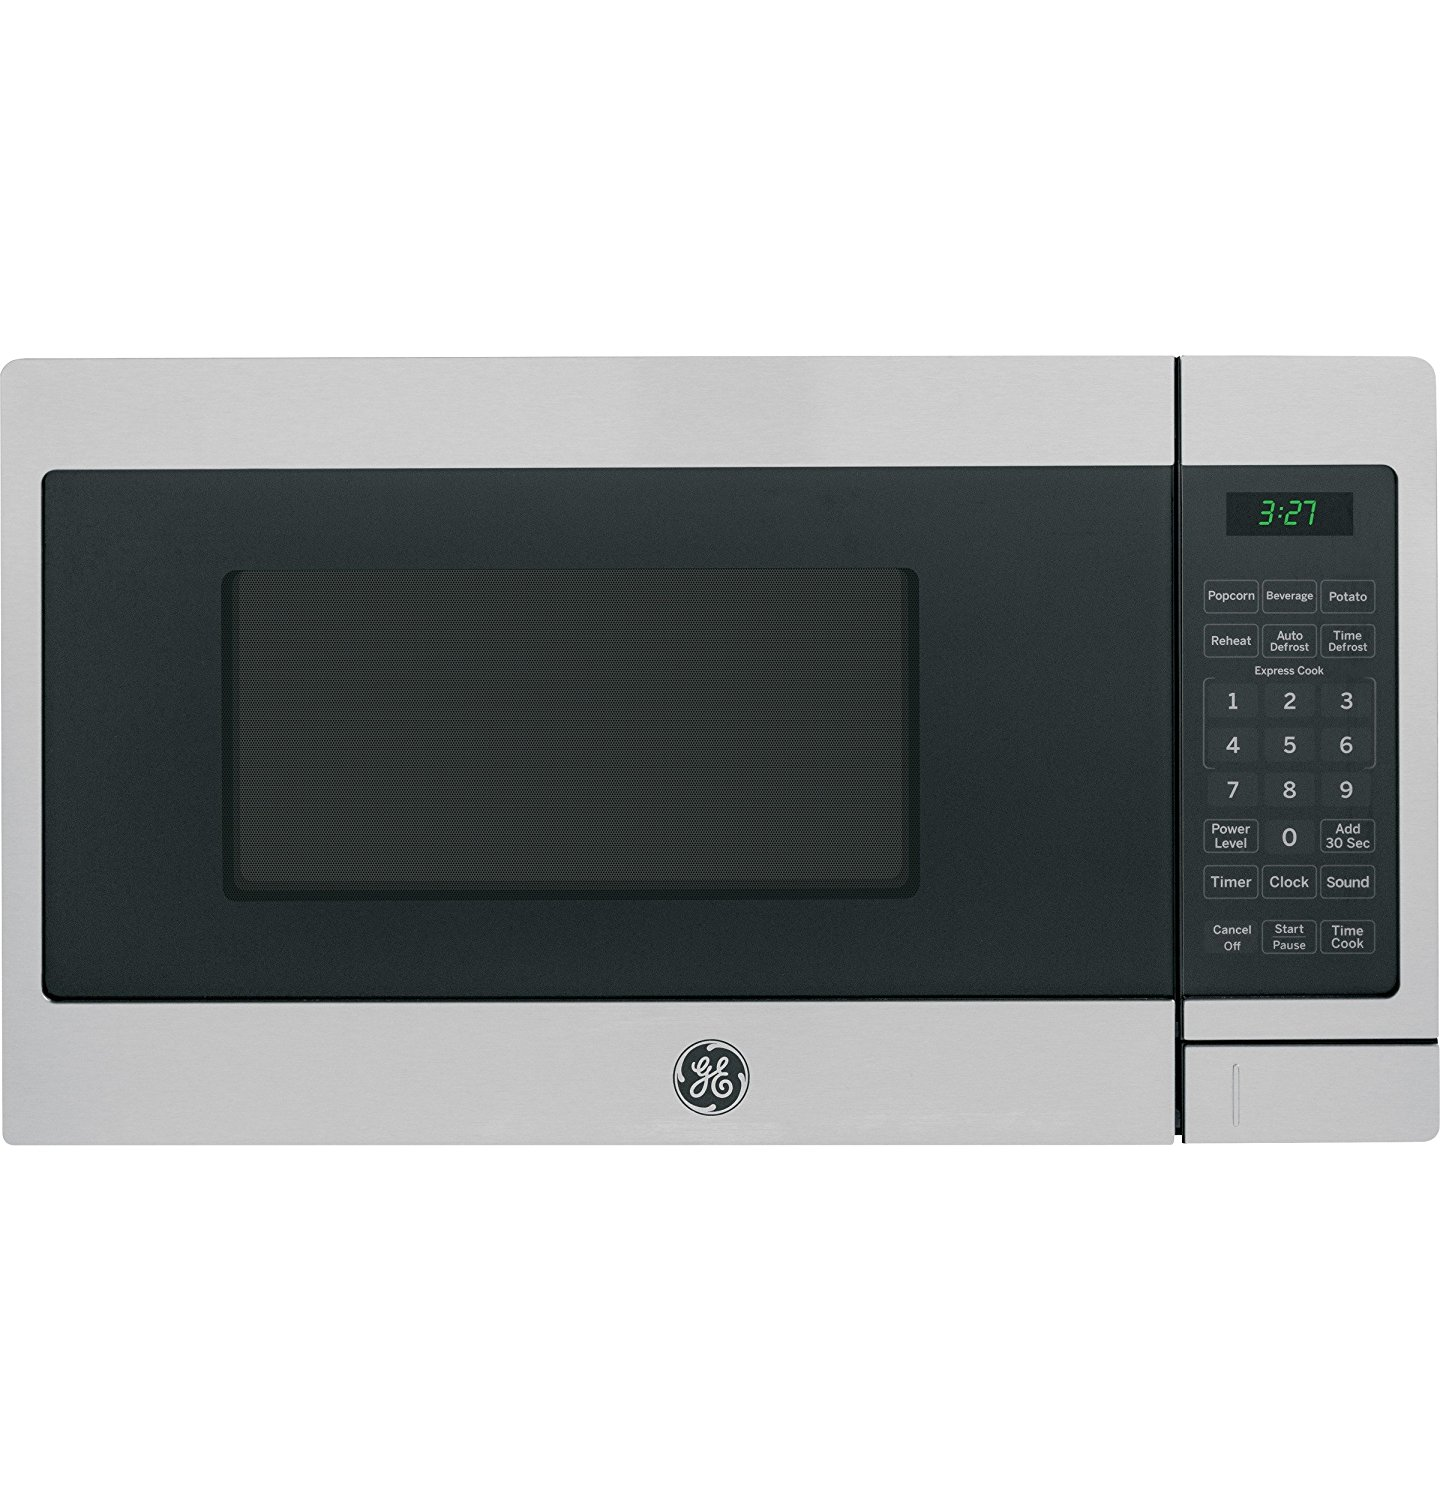 Oster 0.7 Cu Ft Countertop Microwave Ge Jem3072shss 7 Cu Ft Capacity 700 Watt Countertop